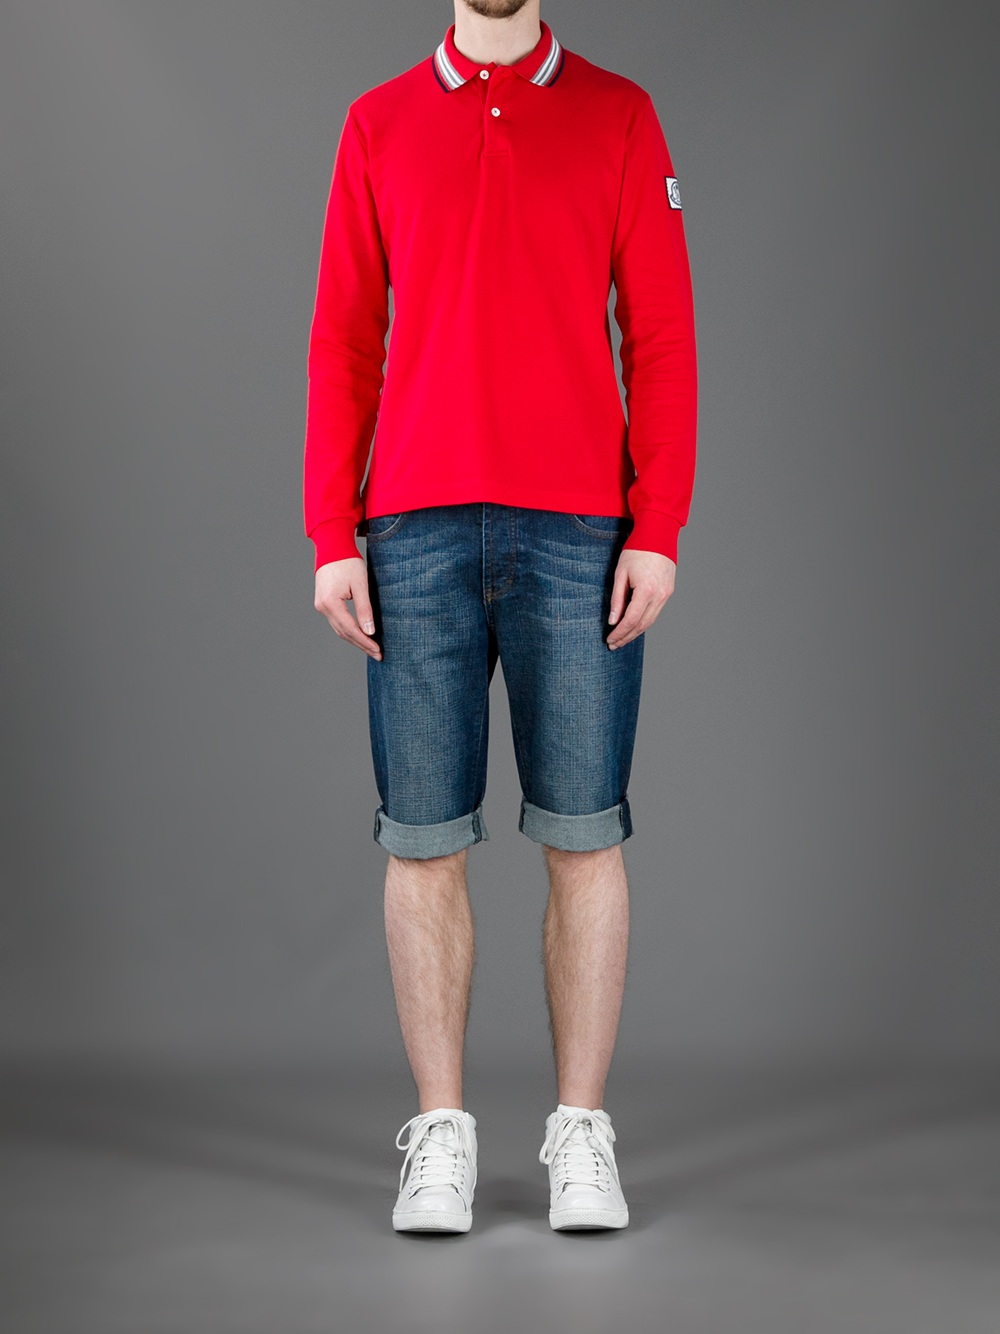 a5637615 Moncler Gamme Bleu Long Sleeve Polo Shirt in Red for Men - Lyst